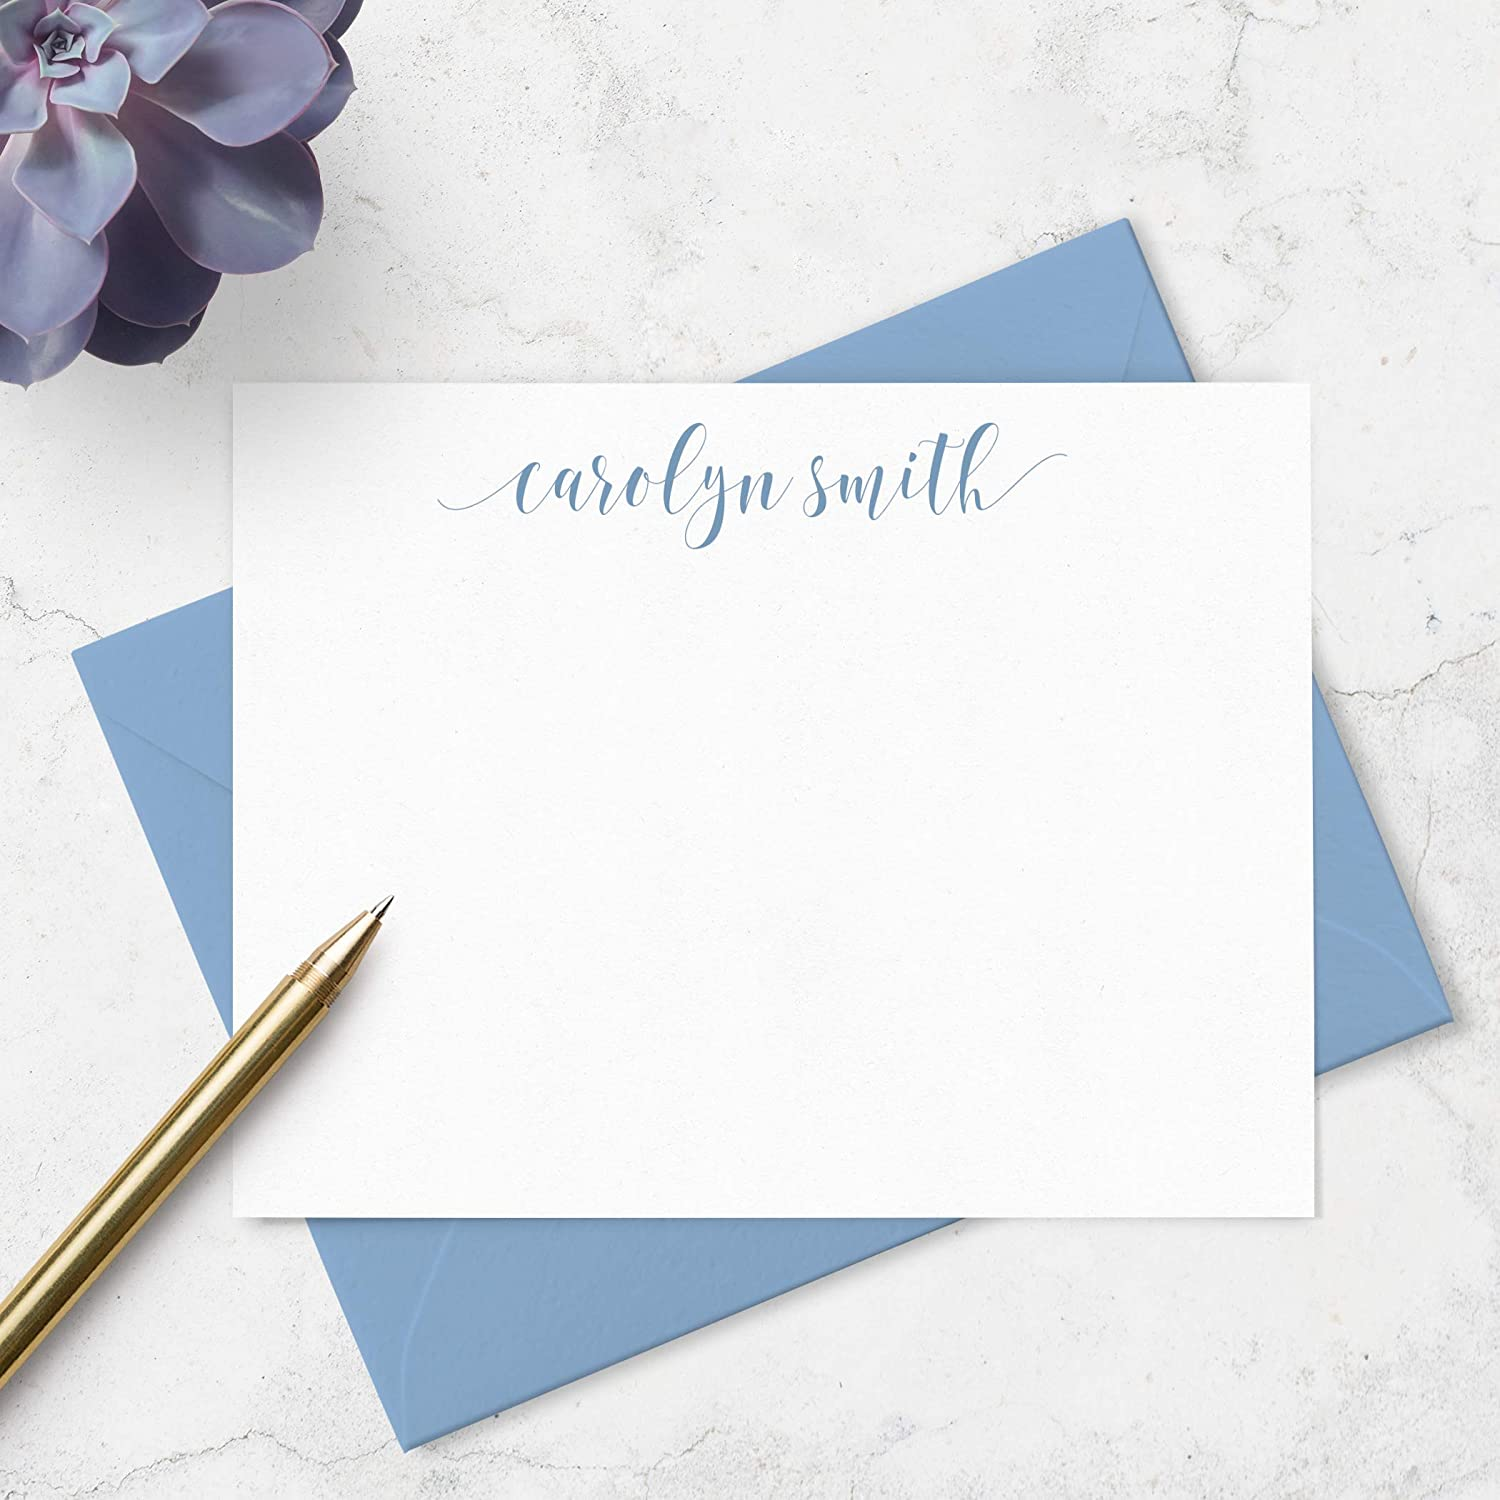 Stationery For Ladies Thank You Cards Gift for Her Personalized Stationery Set of 10 Flat Note Cards /& Envelopes